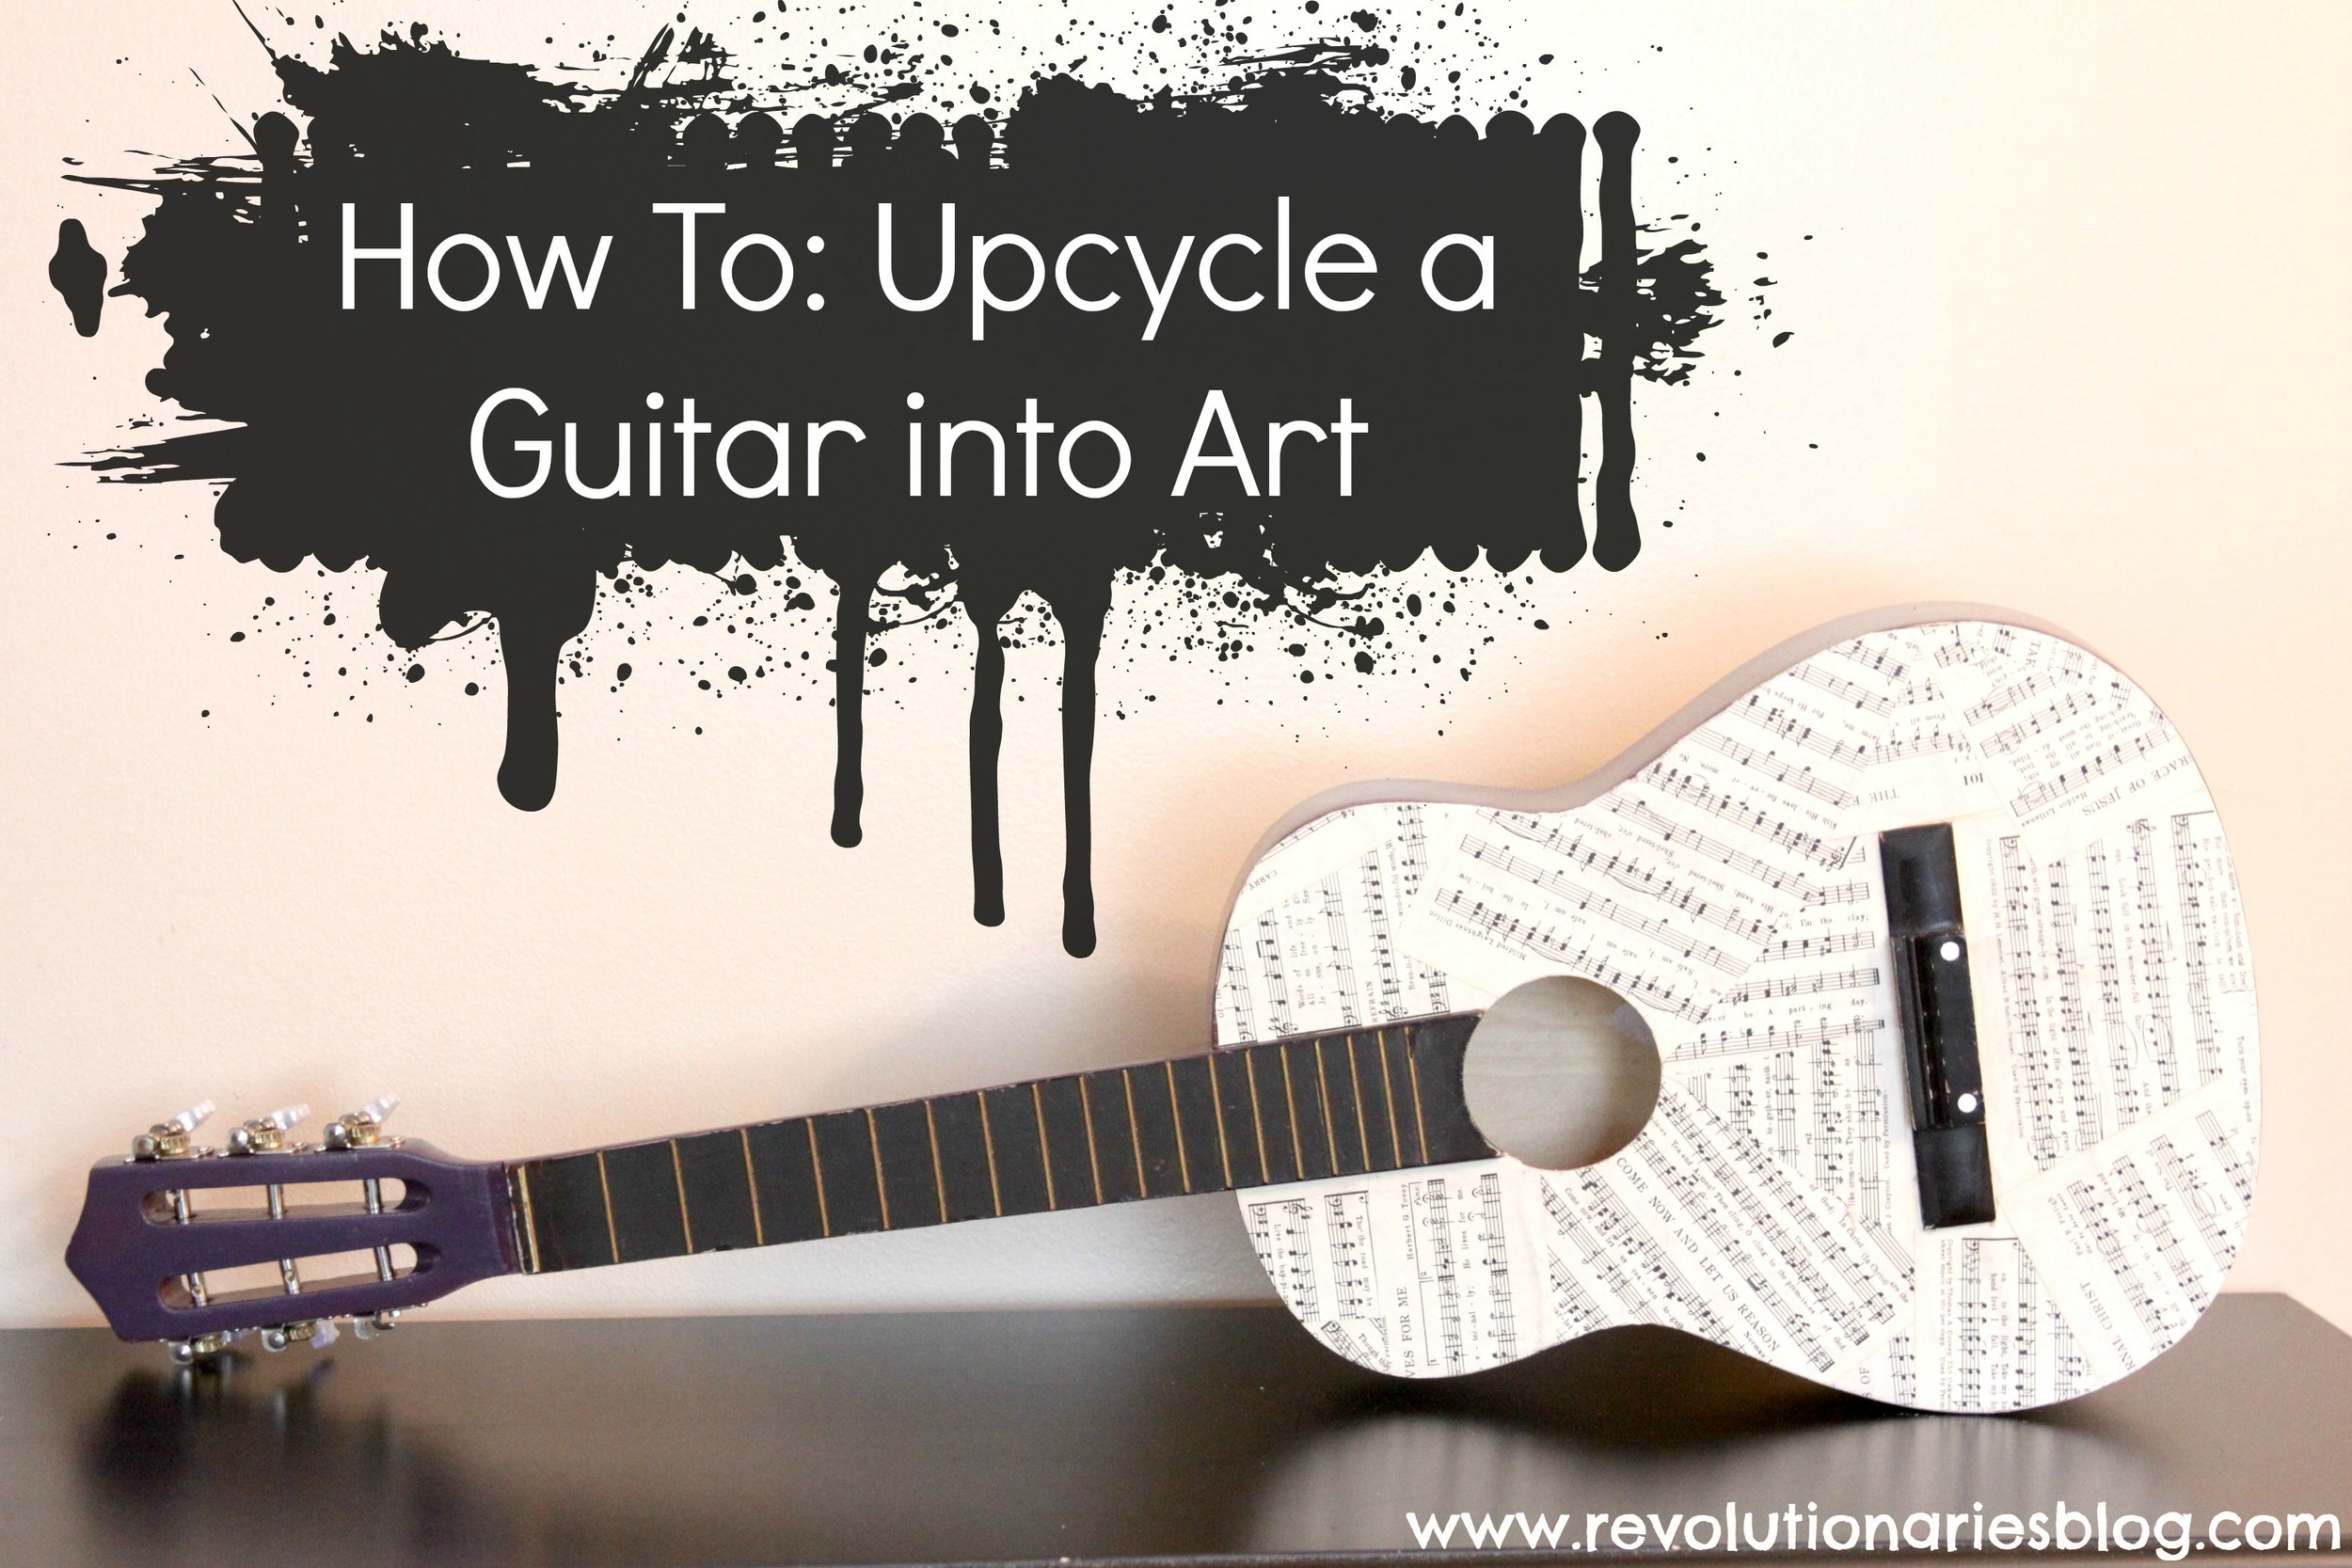 how-to-upcycle-a-guitar-into-art.jpg